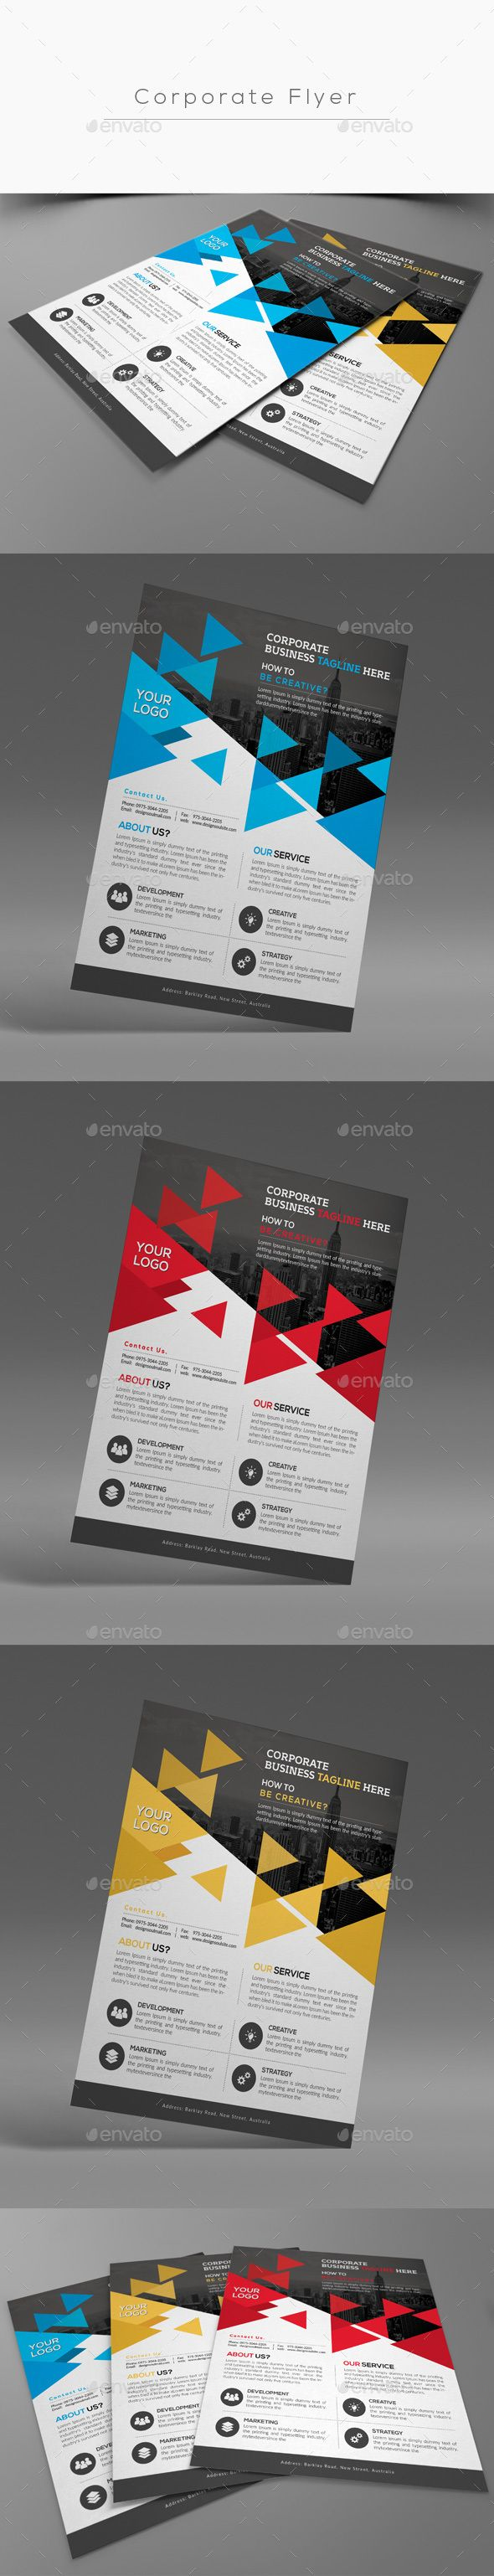 Corporate Flyer Template PSD #design Download: http://graphicriver.net/item/corporate-flyer/13961976?ref=ksioks